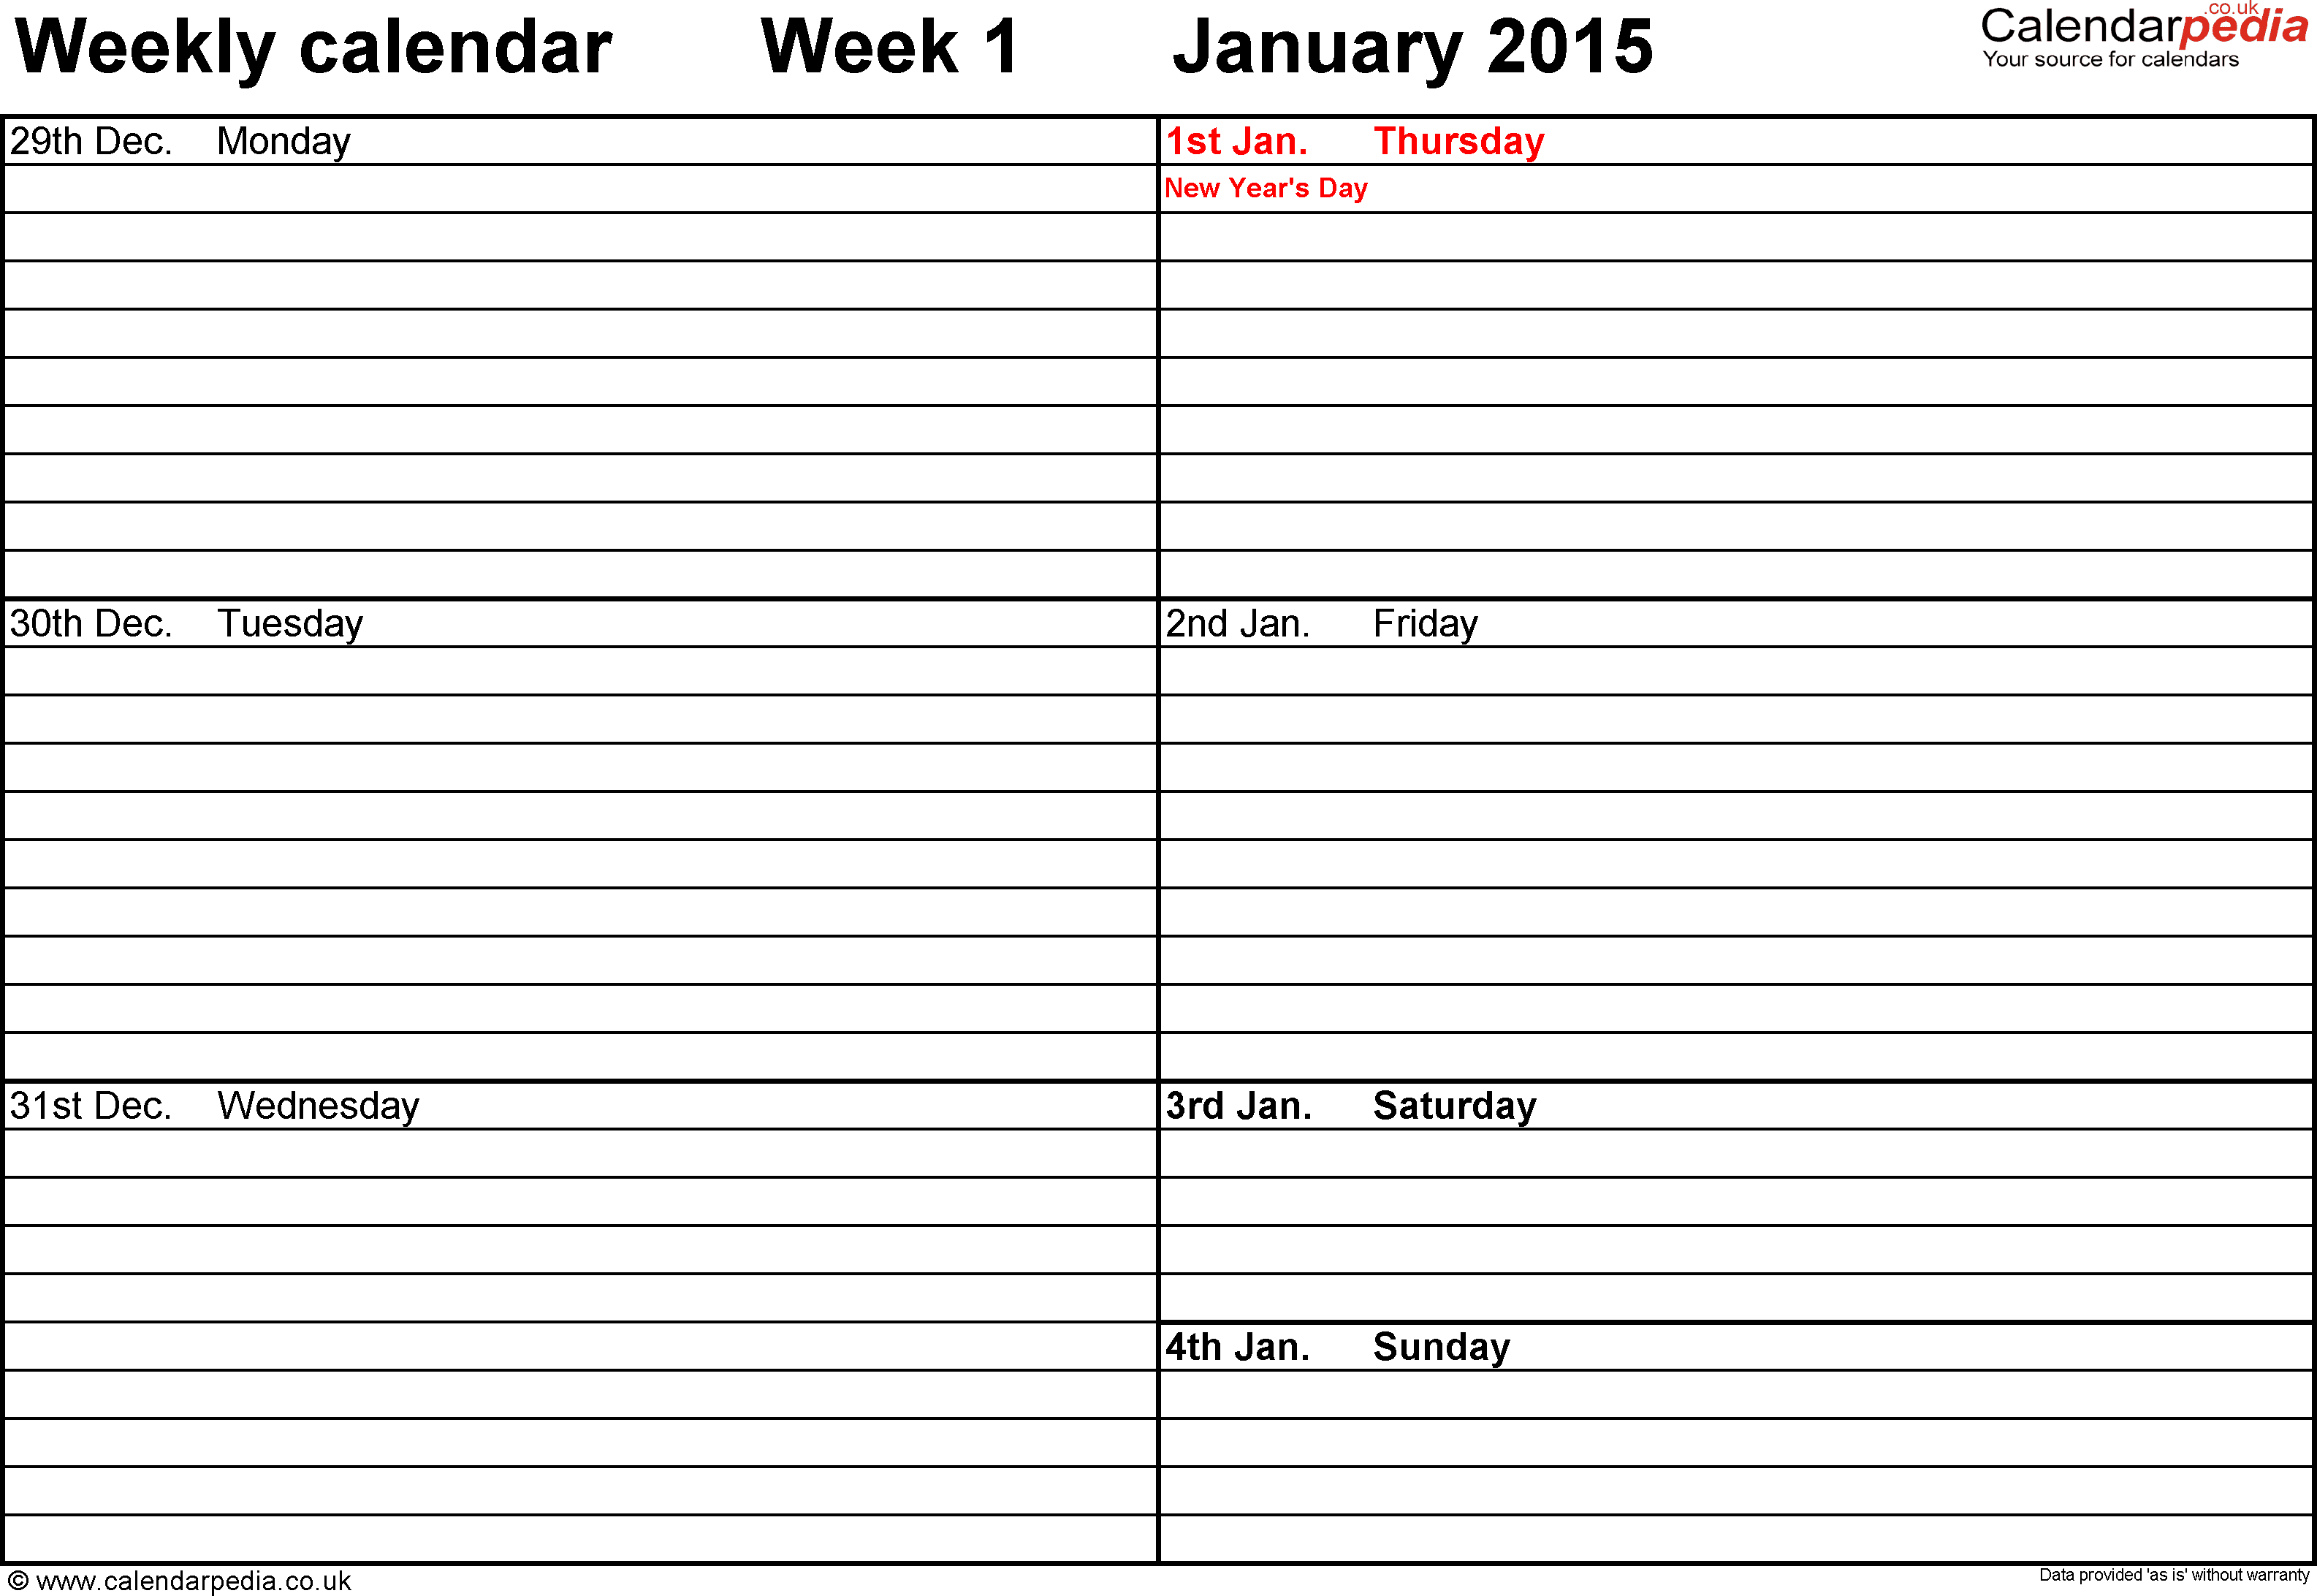 Schedule Worksheet Templates and Weekly Calendar Pdf Weekly Calendar Template